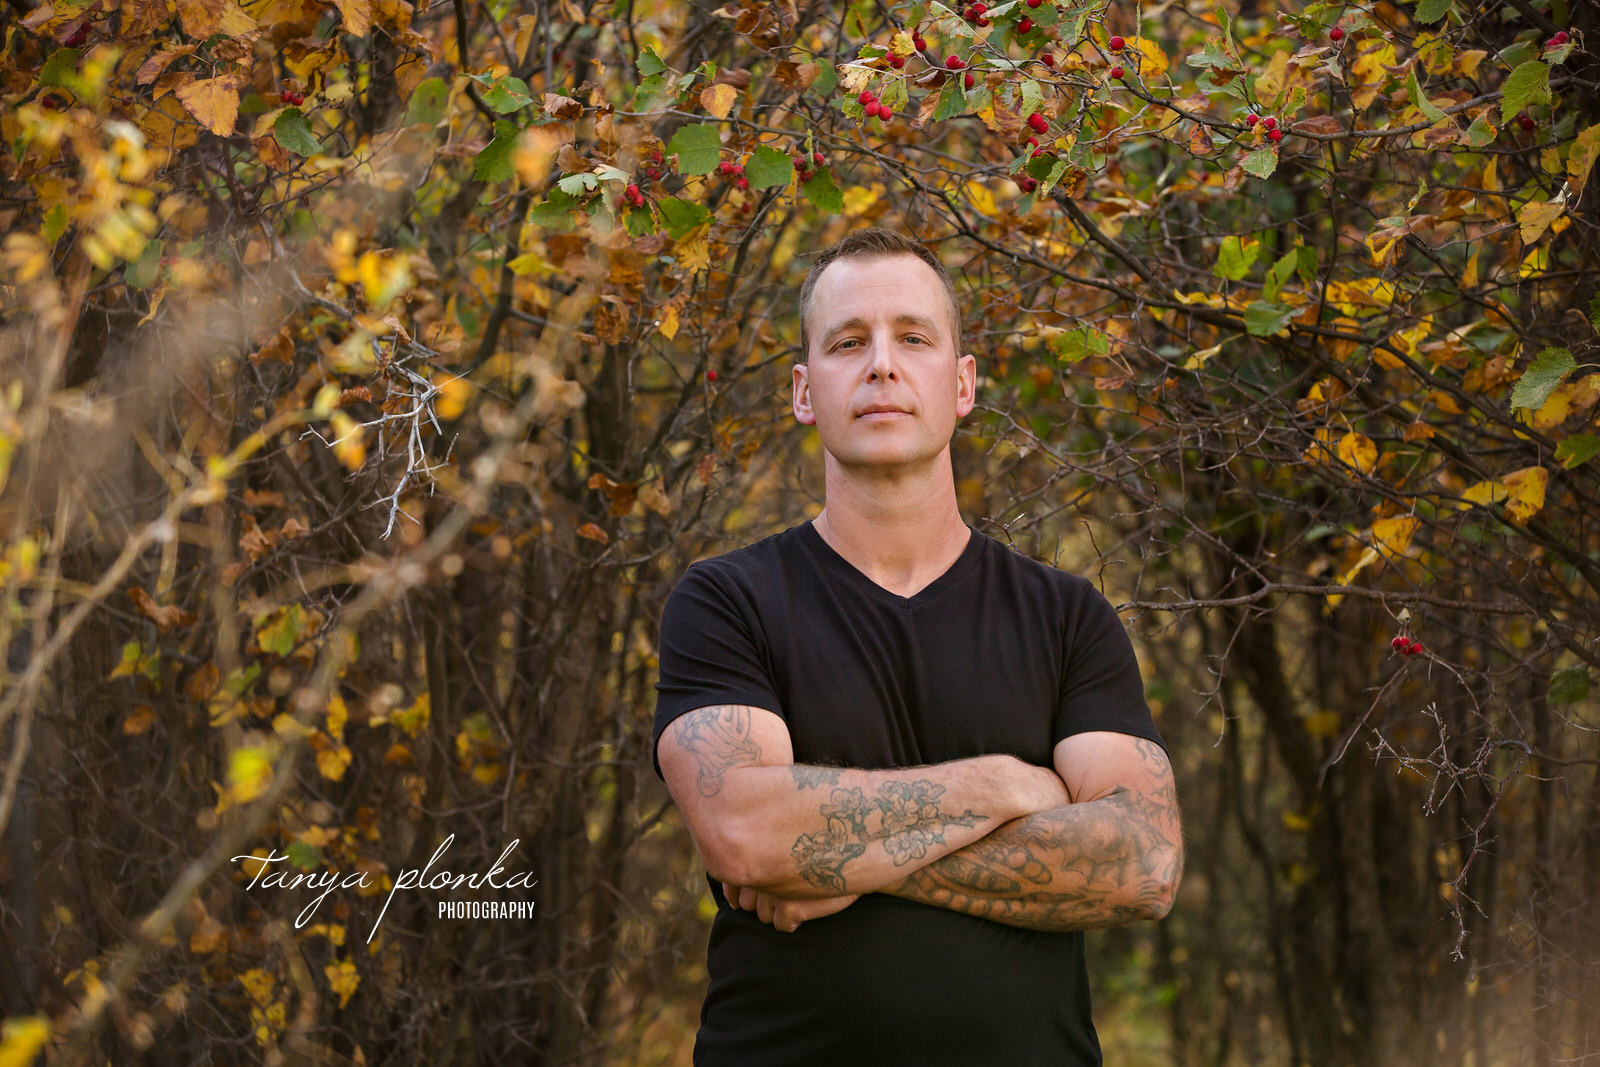 Tattooed man with arms crossed in autumn